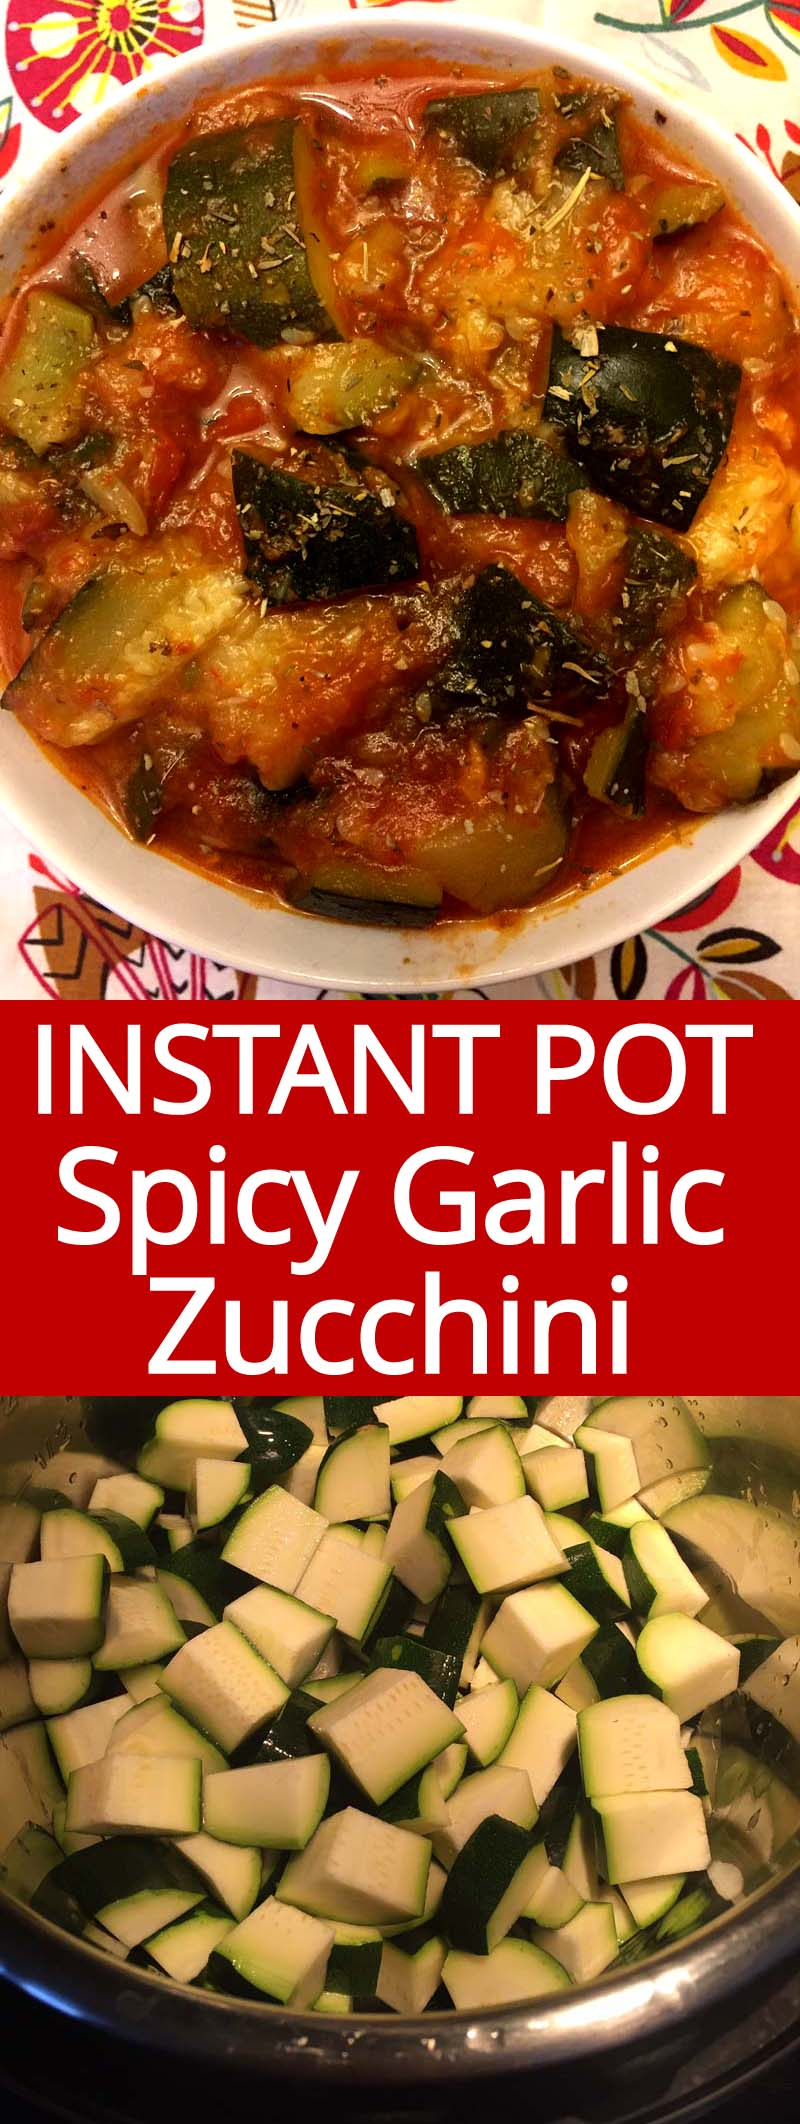 This Instant Pot zucchini is amazing! So easy to make and so full of flavor! Healthy and yummy!